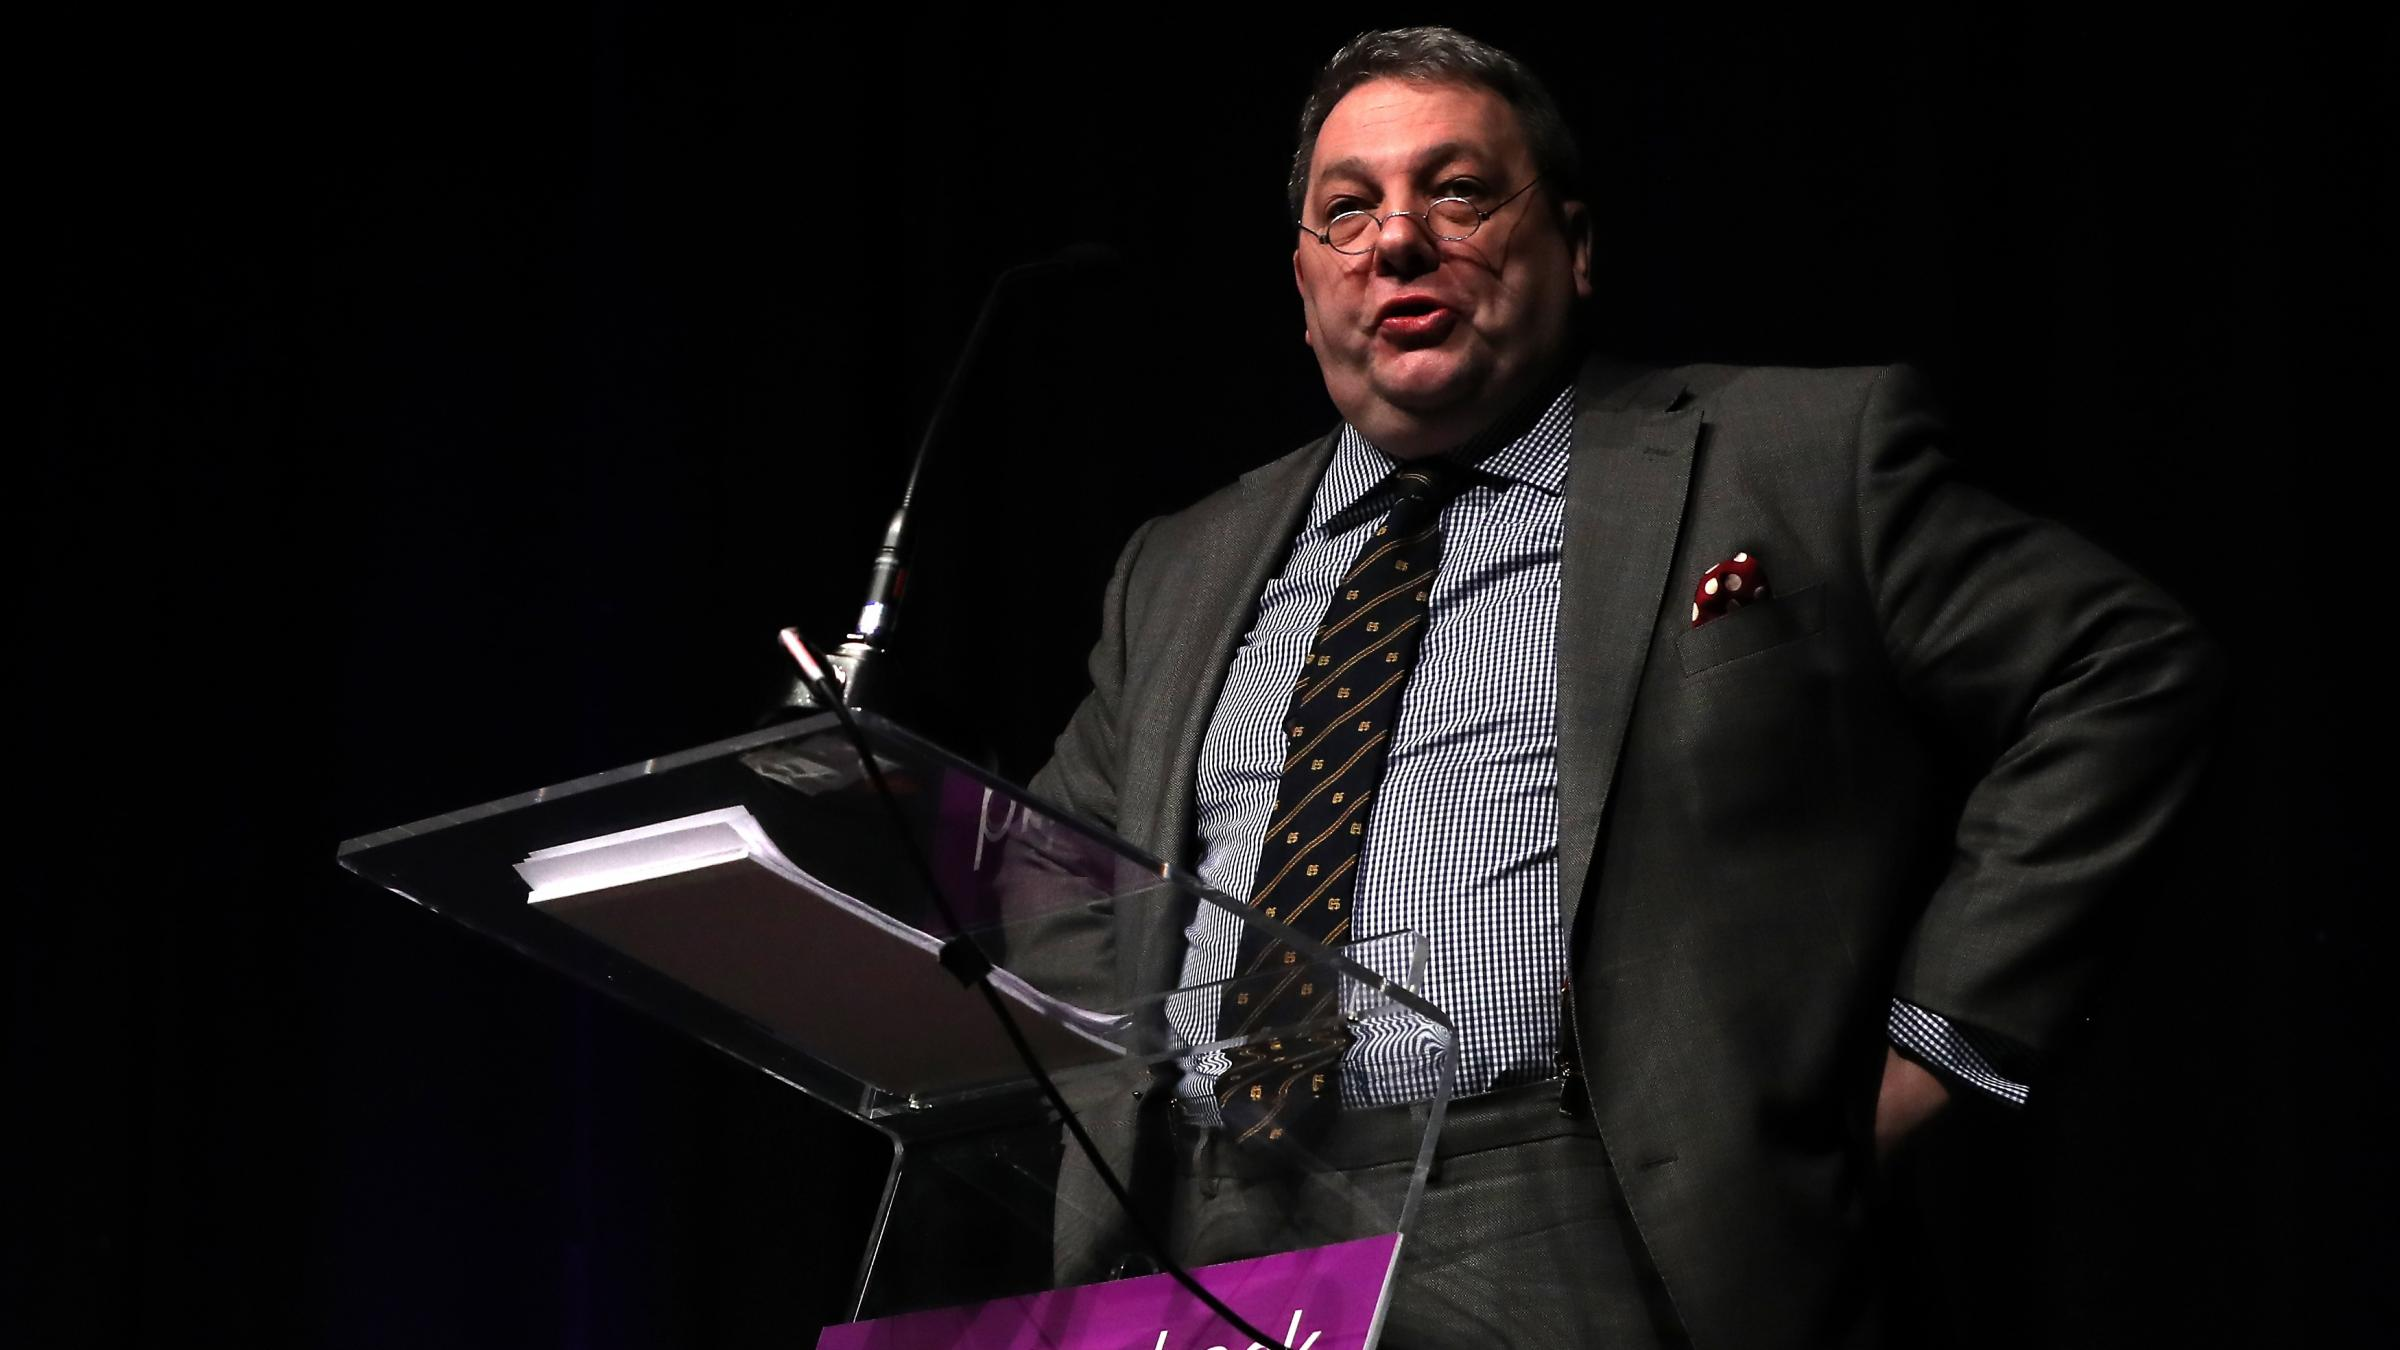 Kirkcaldy Ukip candidate David Coburn in leadership bid